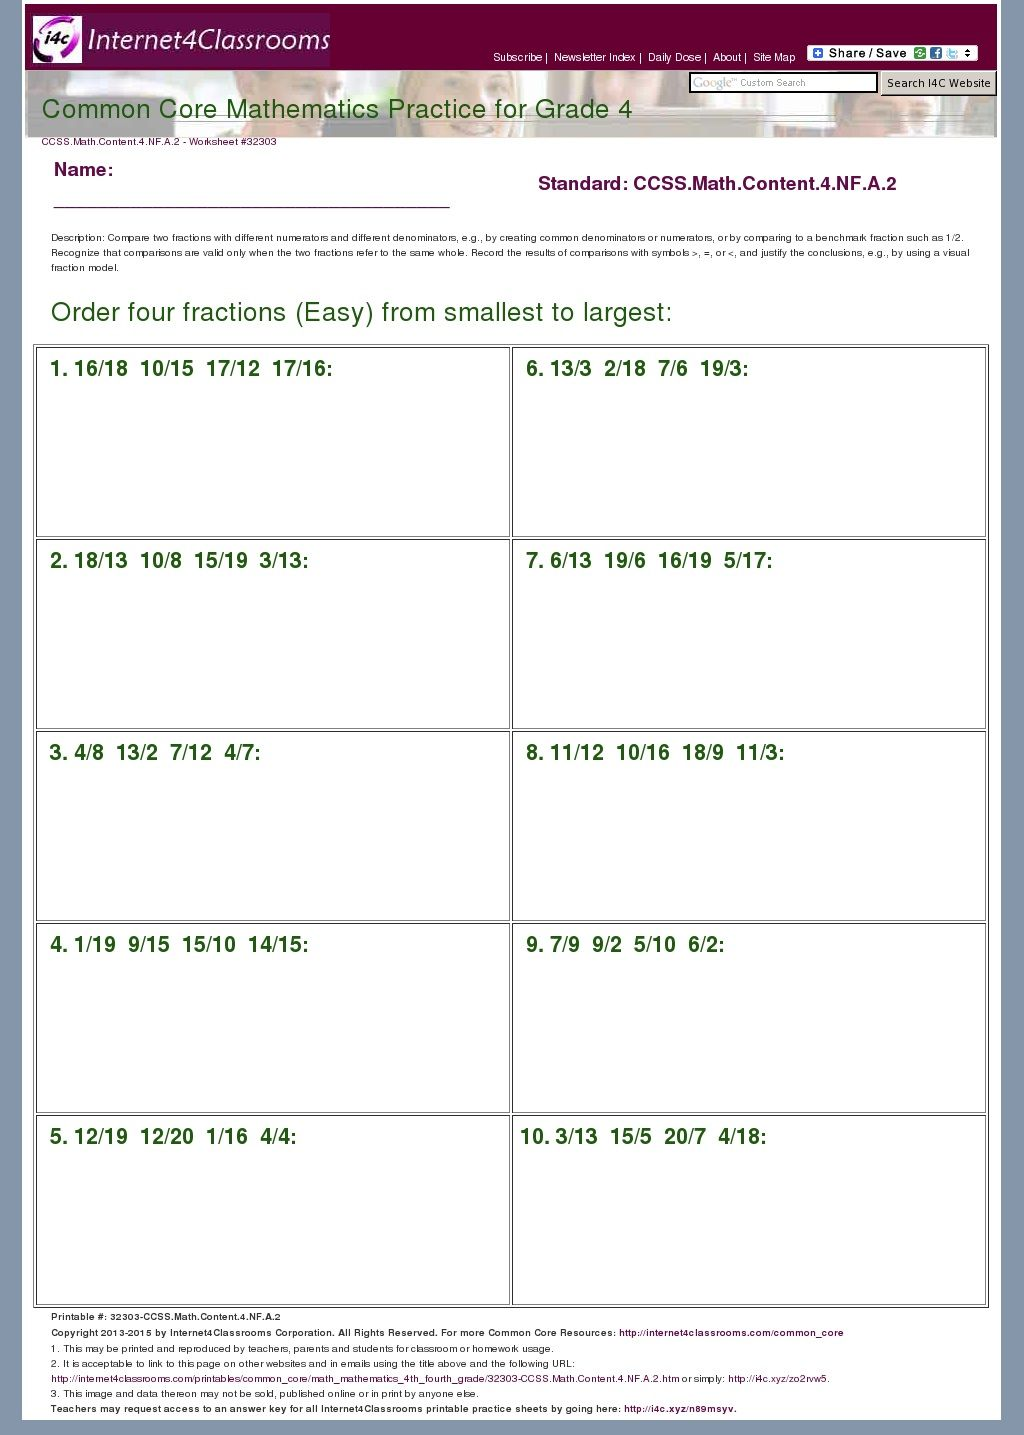 worksheet 4 Nf 6 Worksheets new worksheets available 4th grade order four fractions easy from smallest to